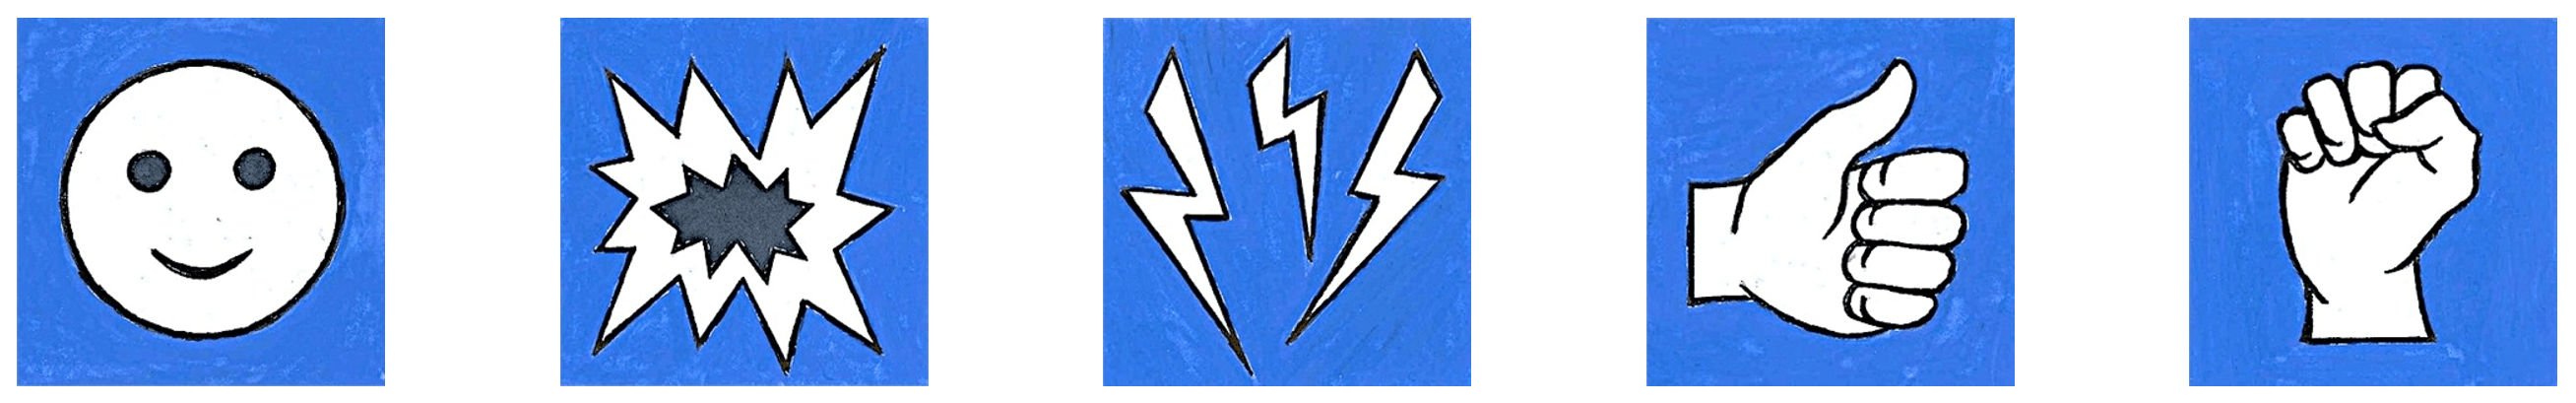 Image, banner of animated icons of a face, an explosion, some lightning bolts, a thumbs up, and a closed fist